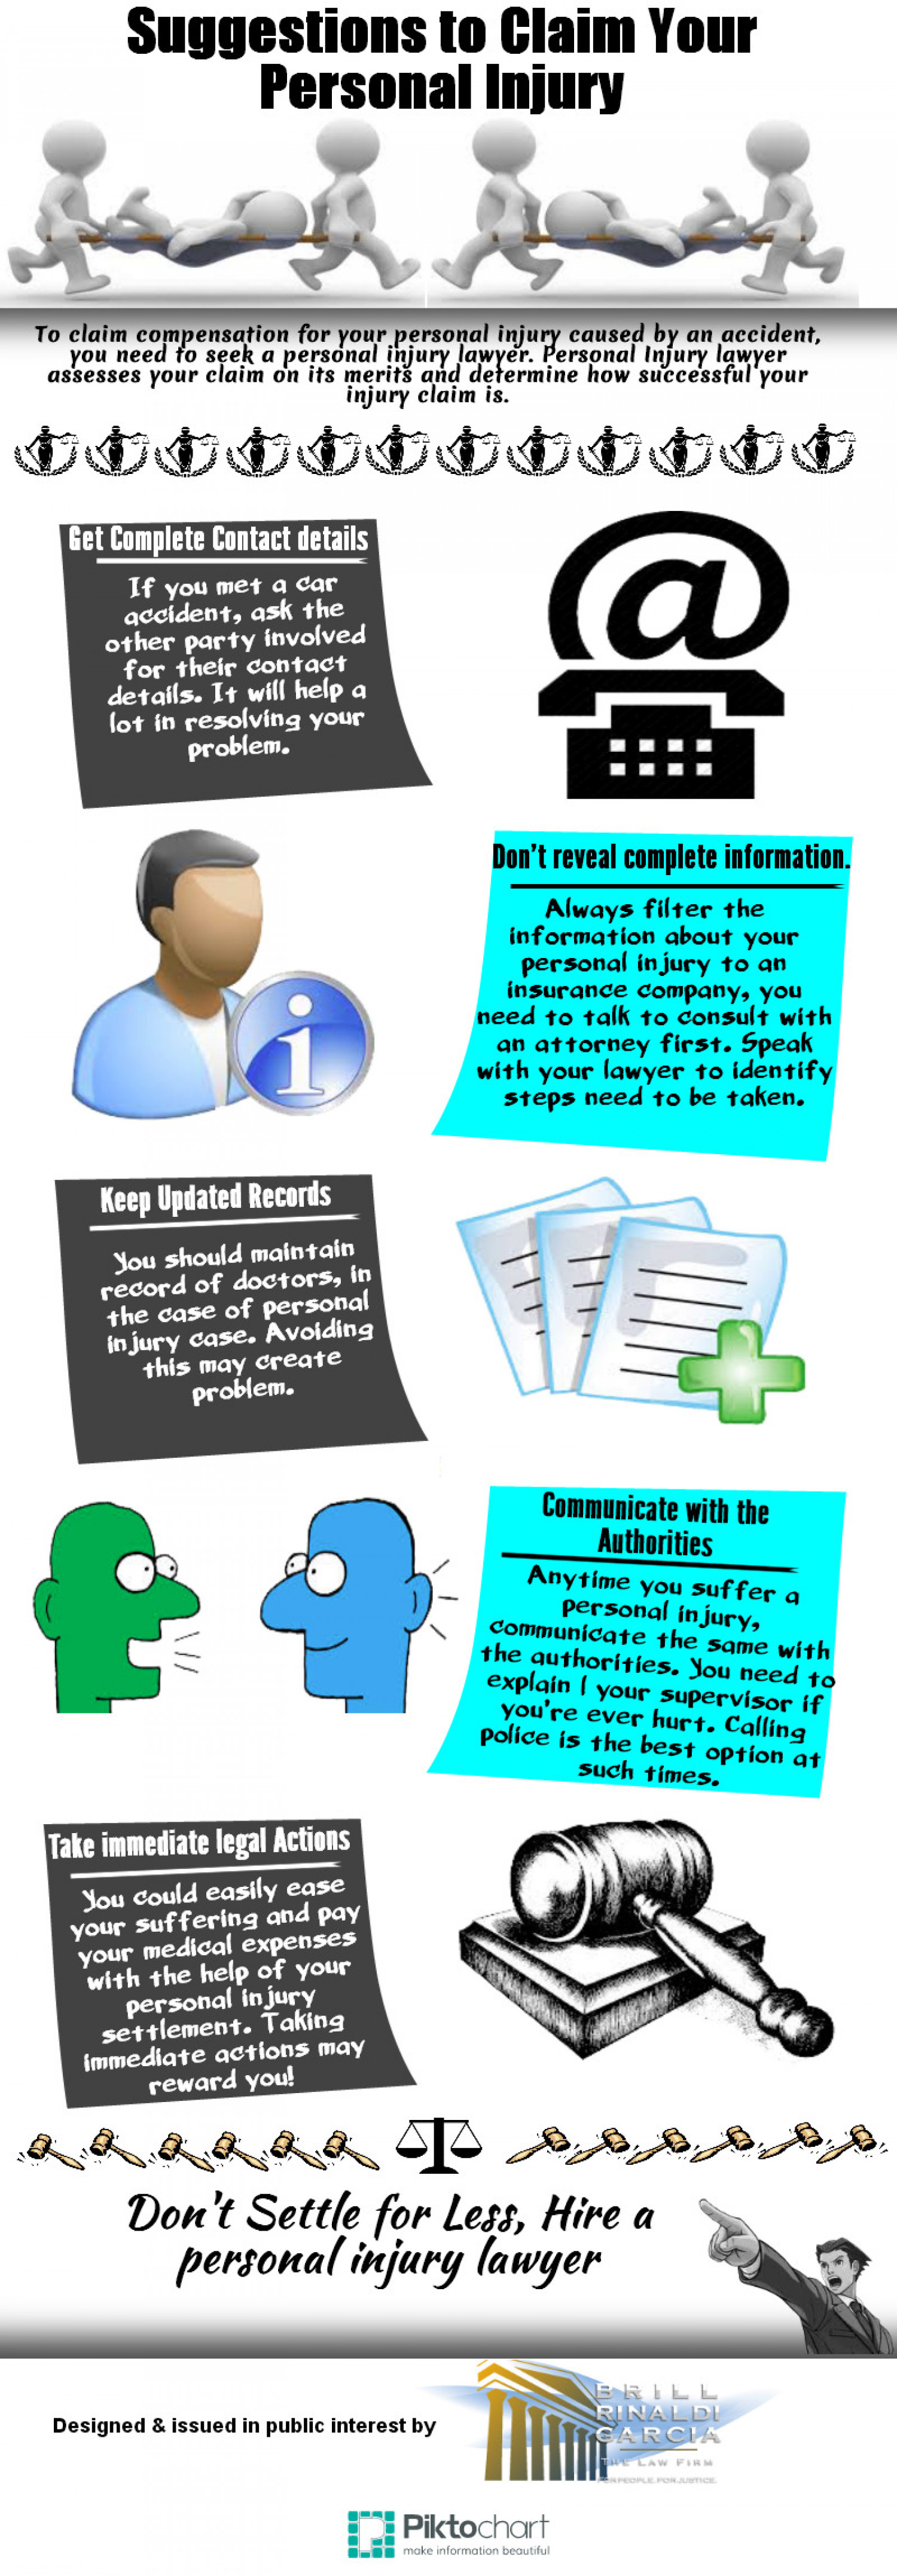 Suggestions to Claim Your Personal Injury Infographic